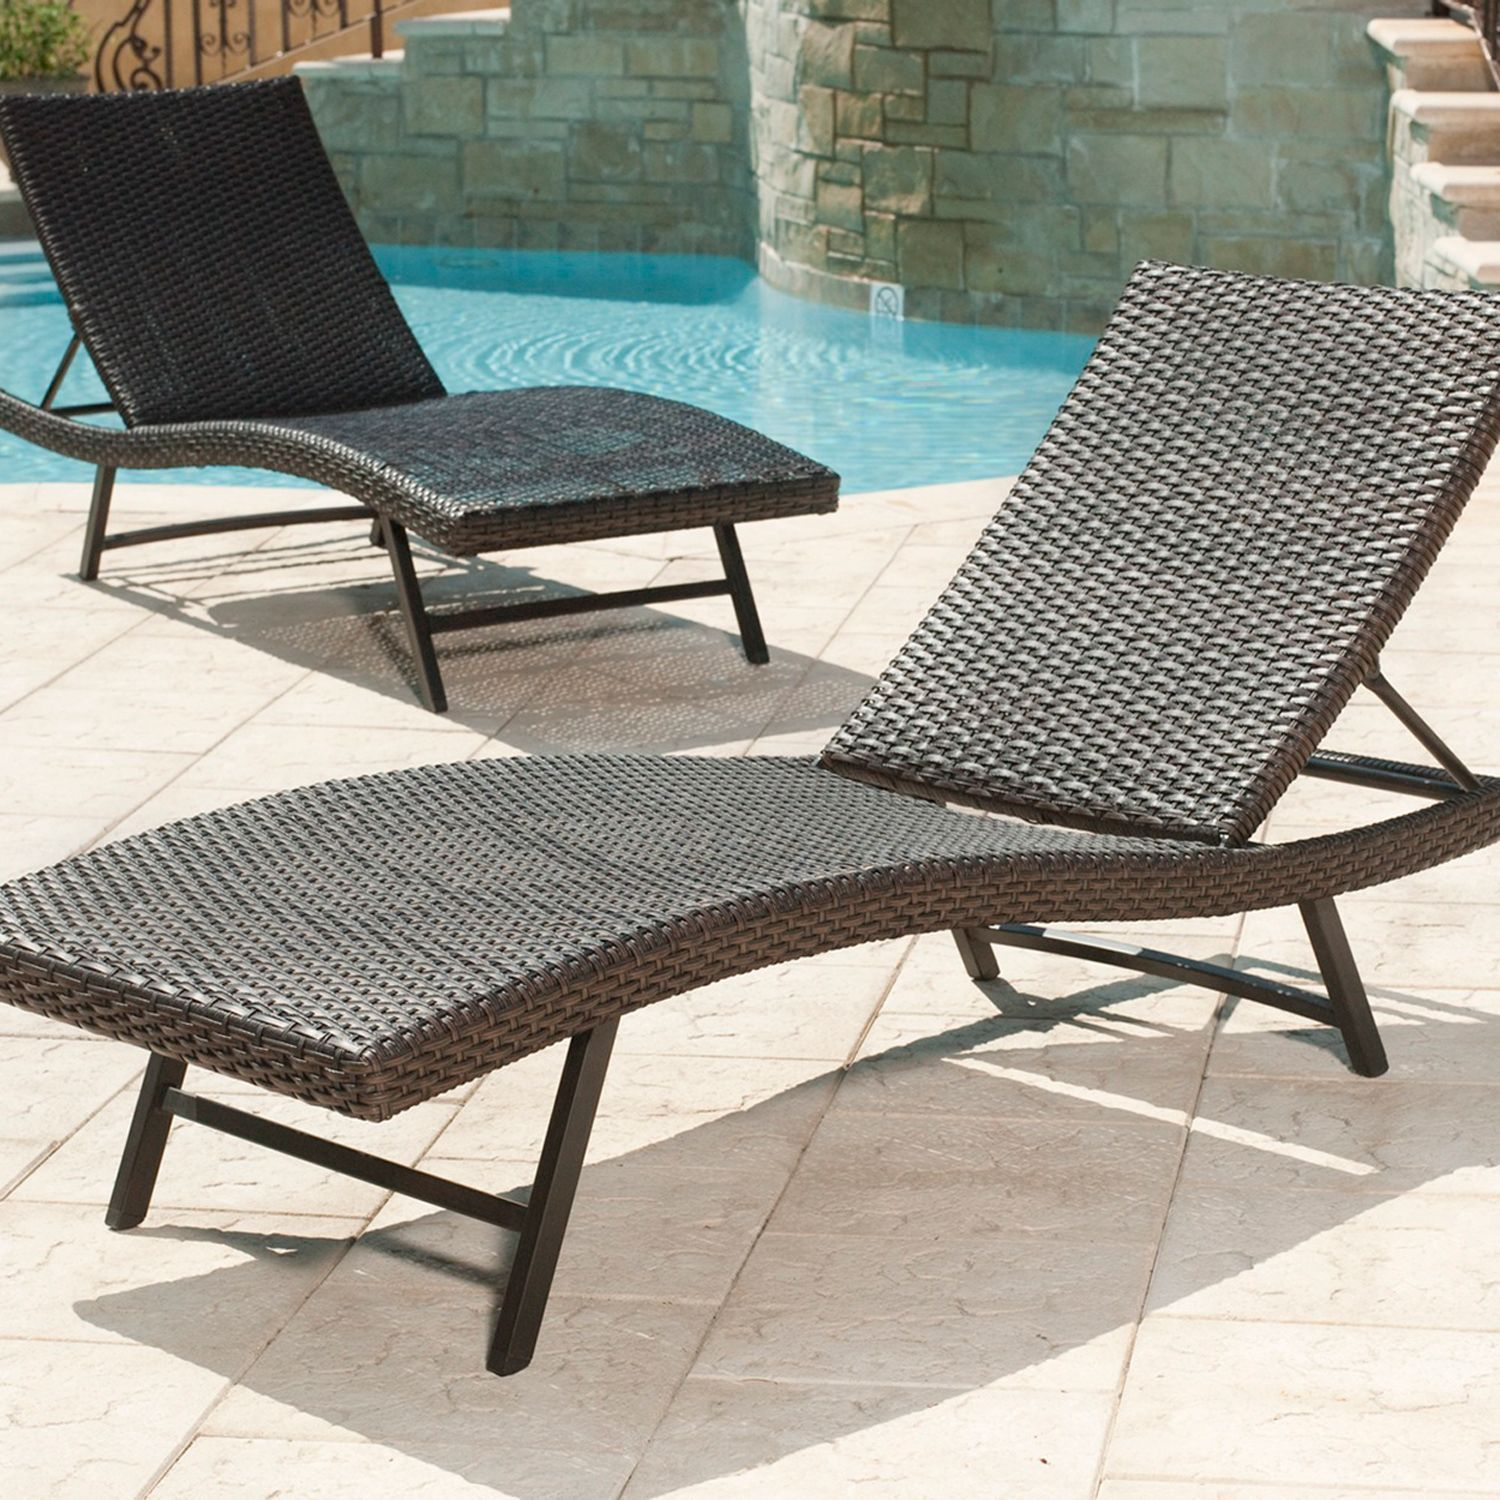 Member S Mark Heritage Chaise Lounge Chair Sam S Club Lounge Chair Outdoor Pool Chaise Lounge Pool Chaise